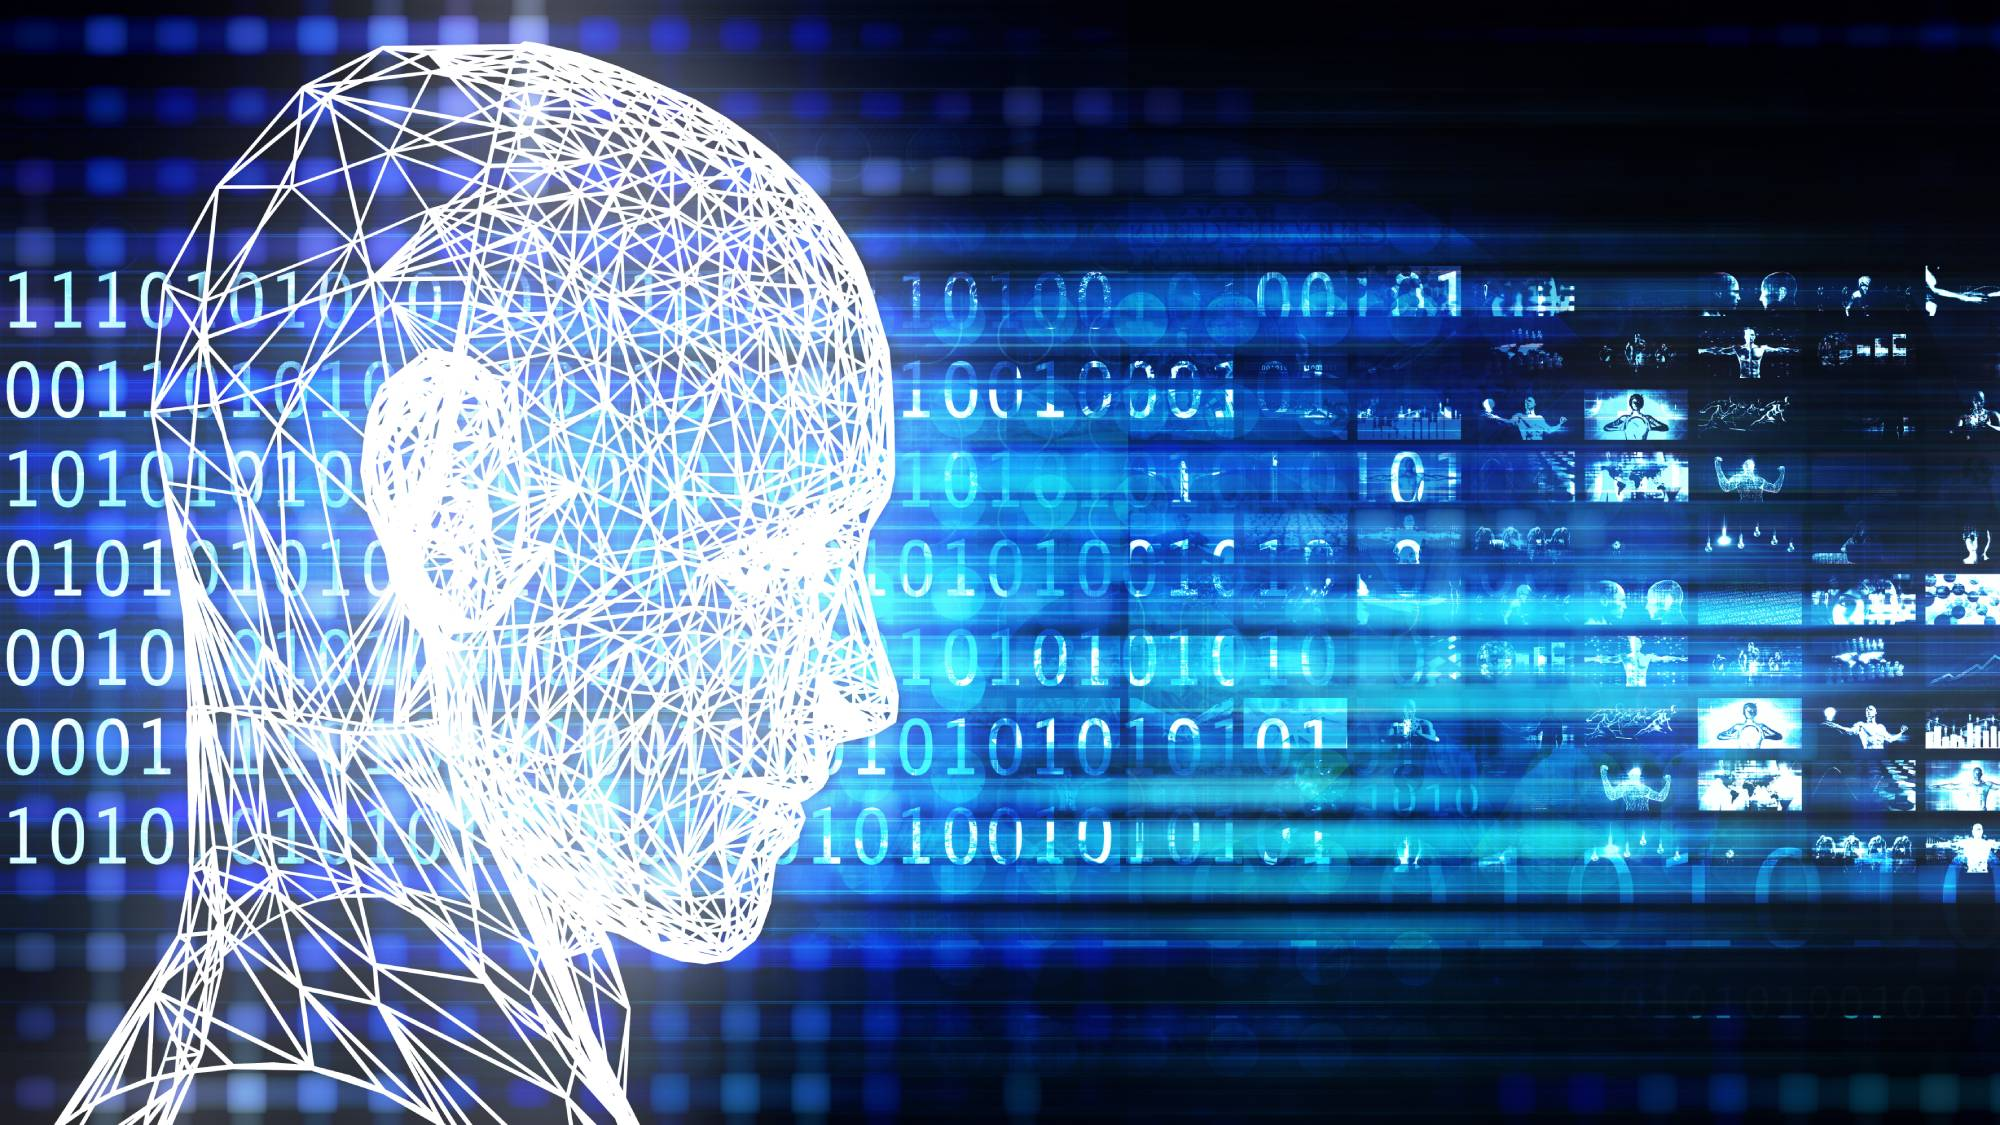 A futuristic drawing of a human head against the backdrop of binary code and photos.